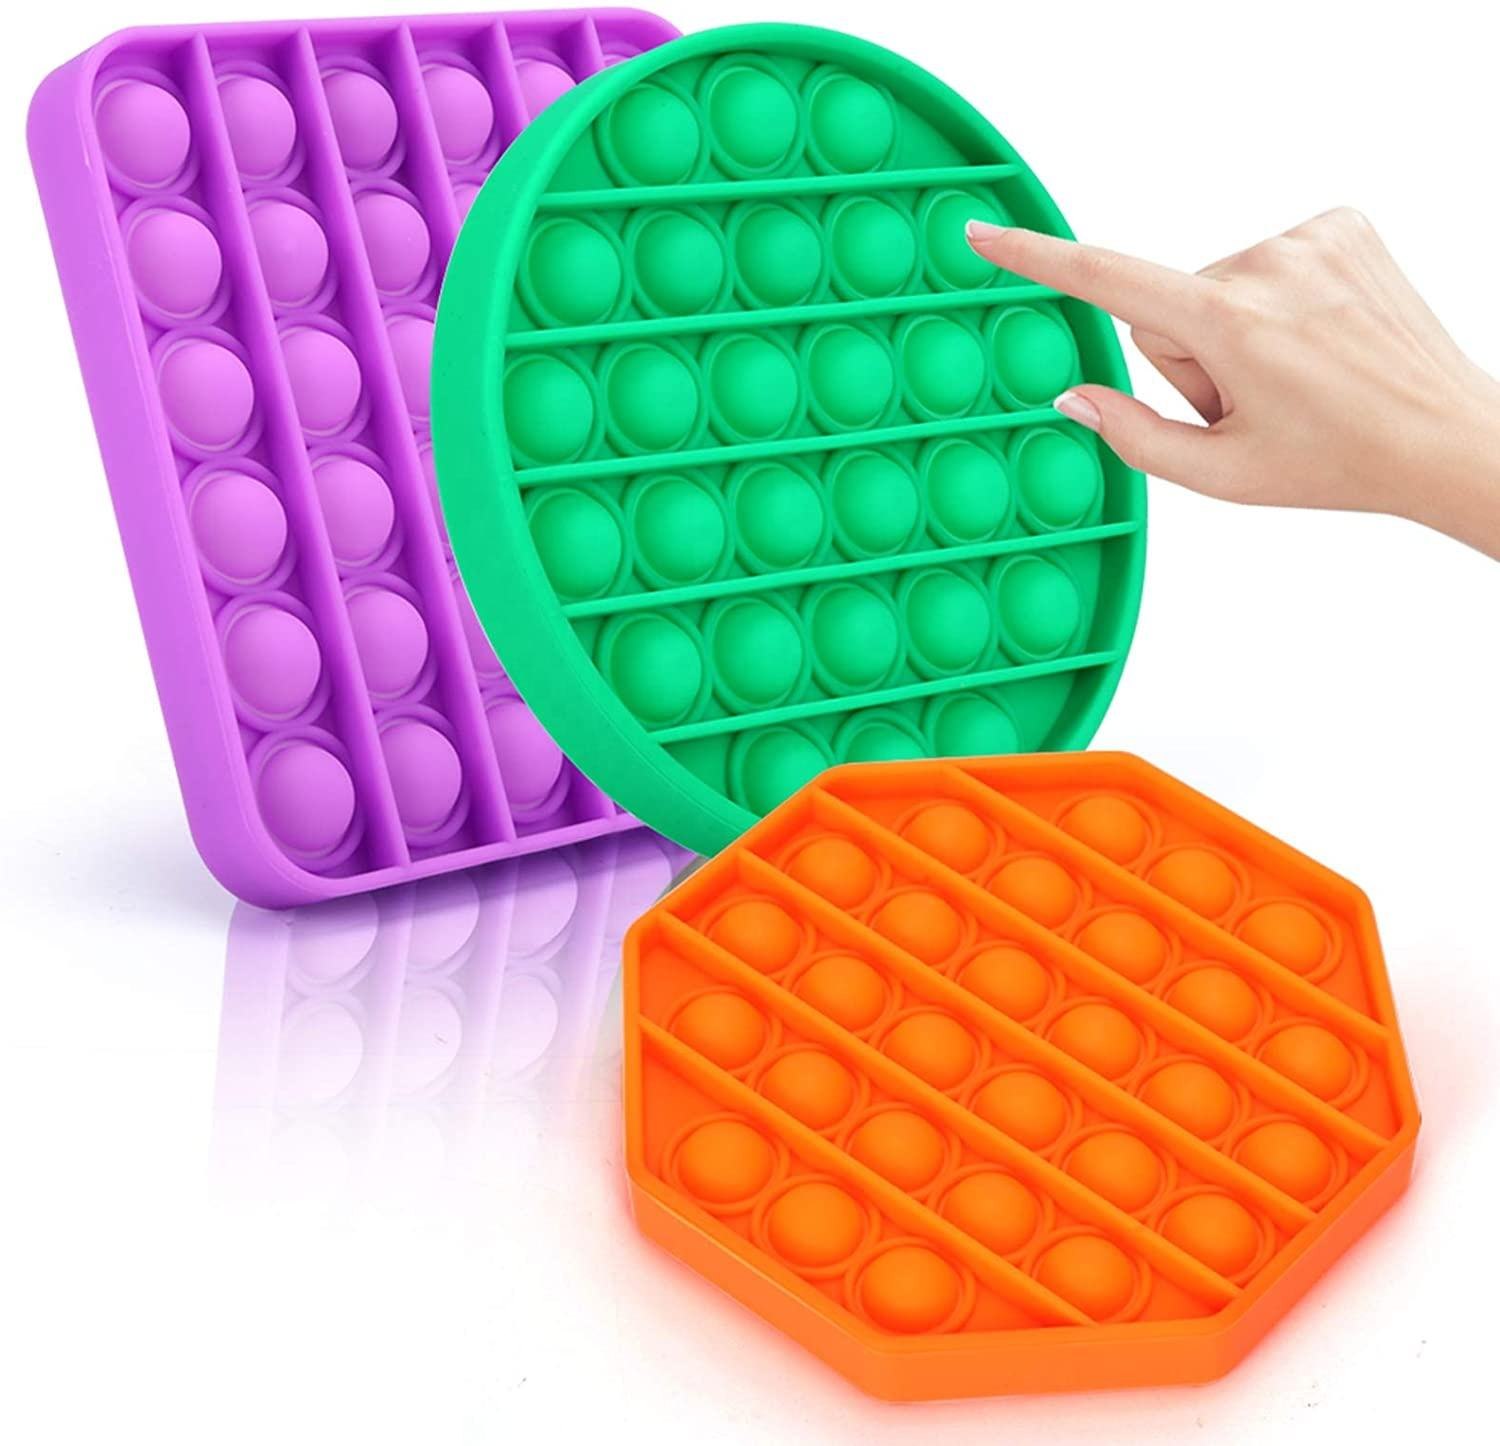 Großhandel Amazon Hot Selling Weiche Silikon Linderung Stress Angst <span class=keywords><strong>Spielzeug</strong></span> Autismus Push Beliebte Schaum Gadget Sensory Toys